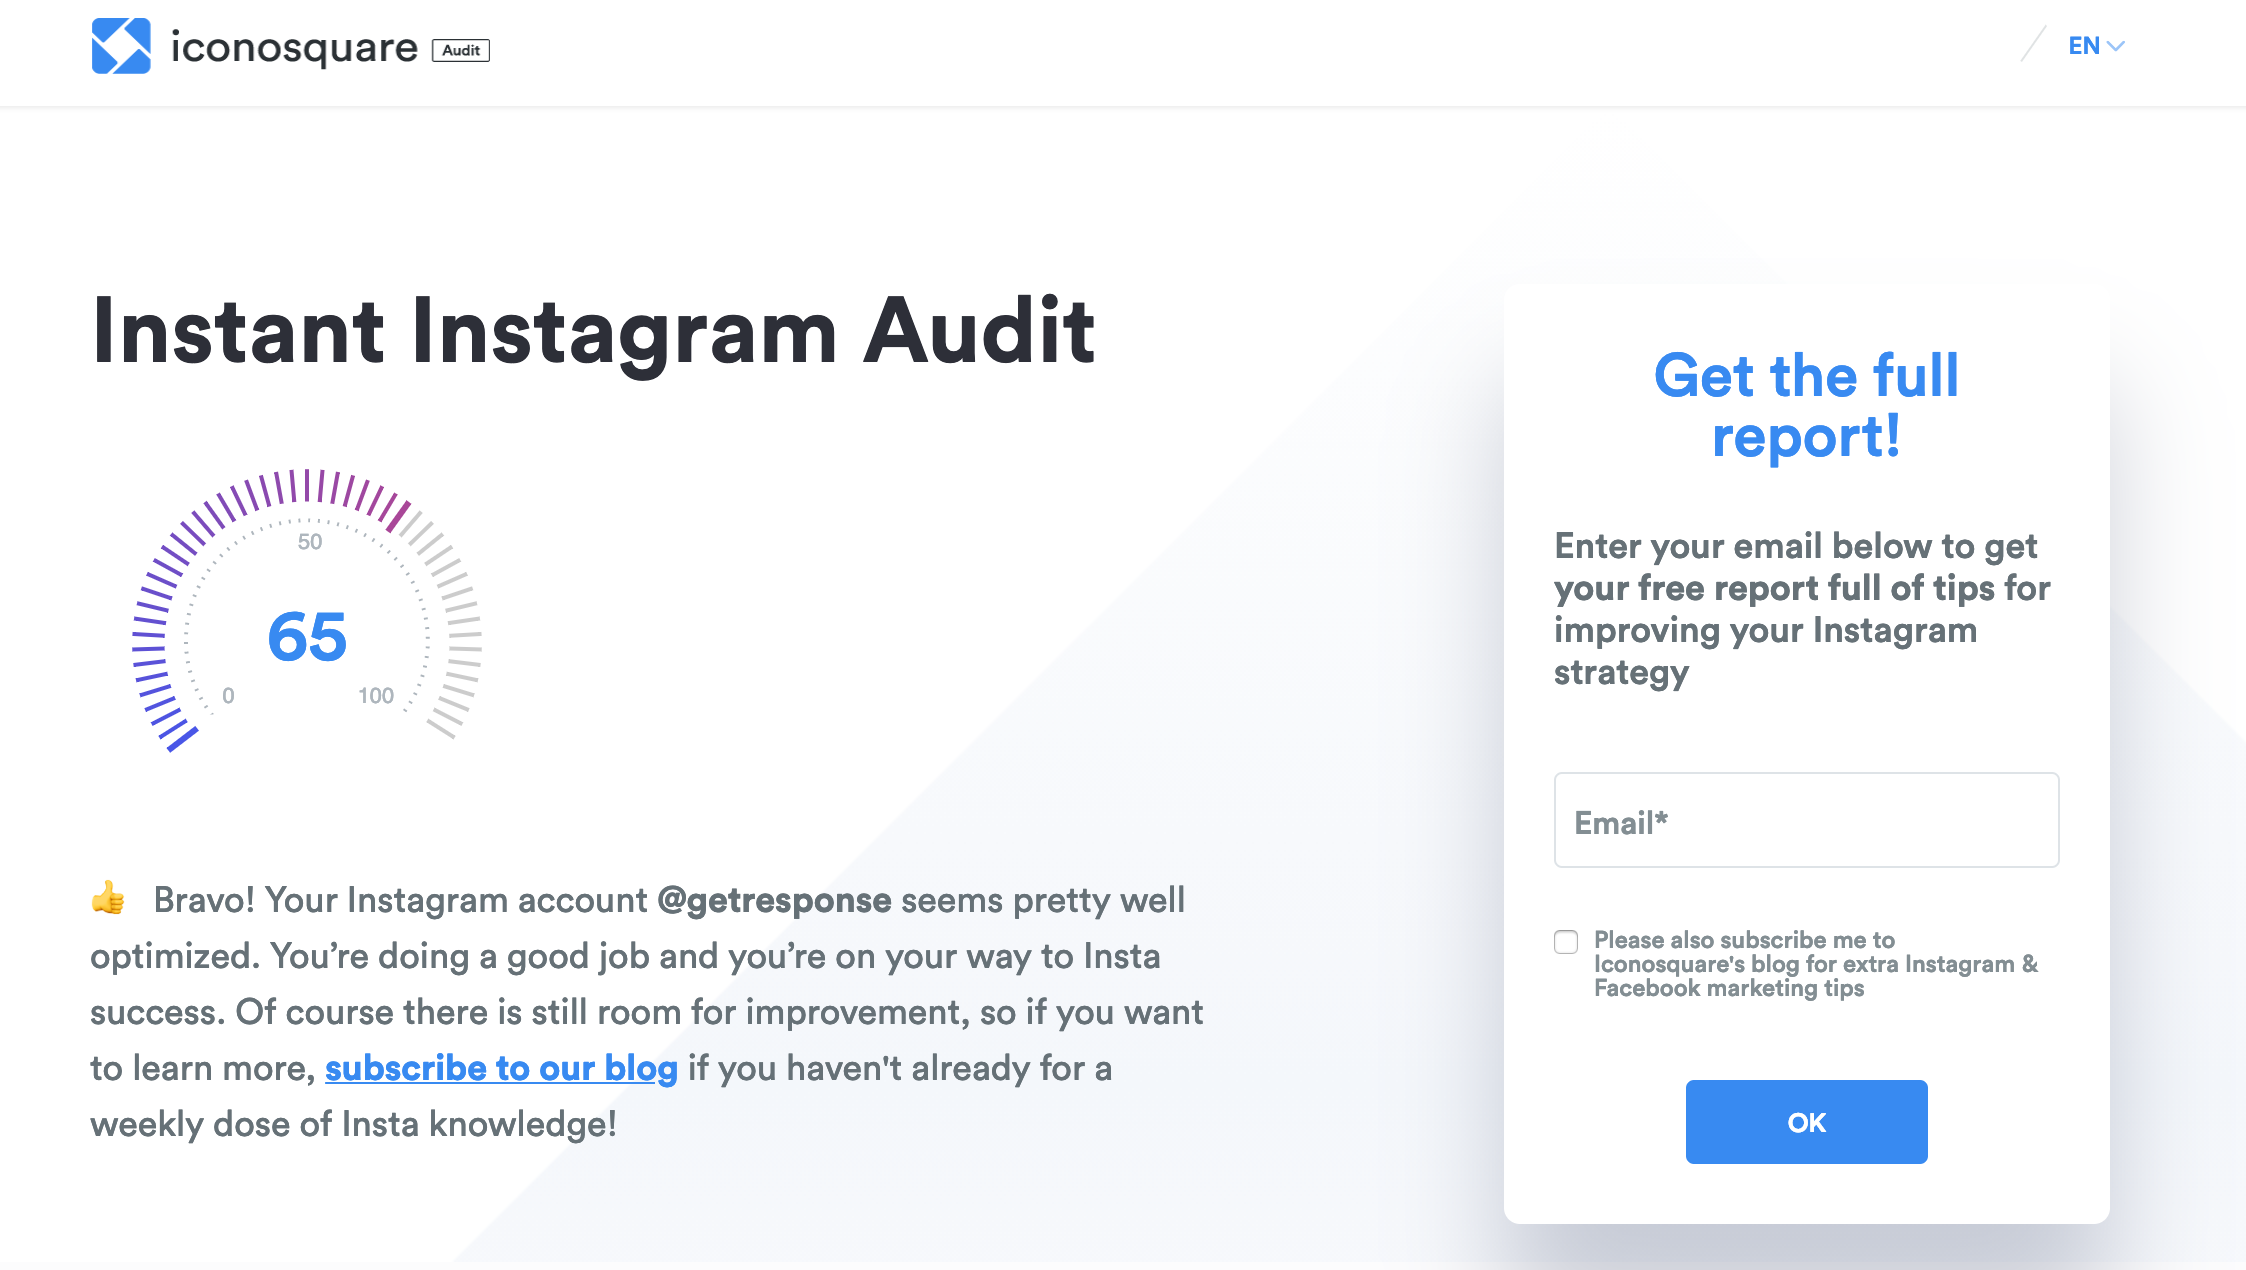 iconosquare instagram audit tool.